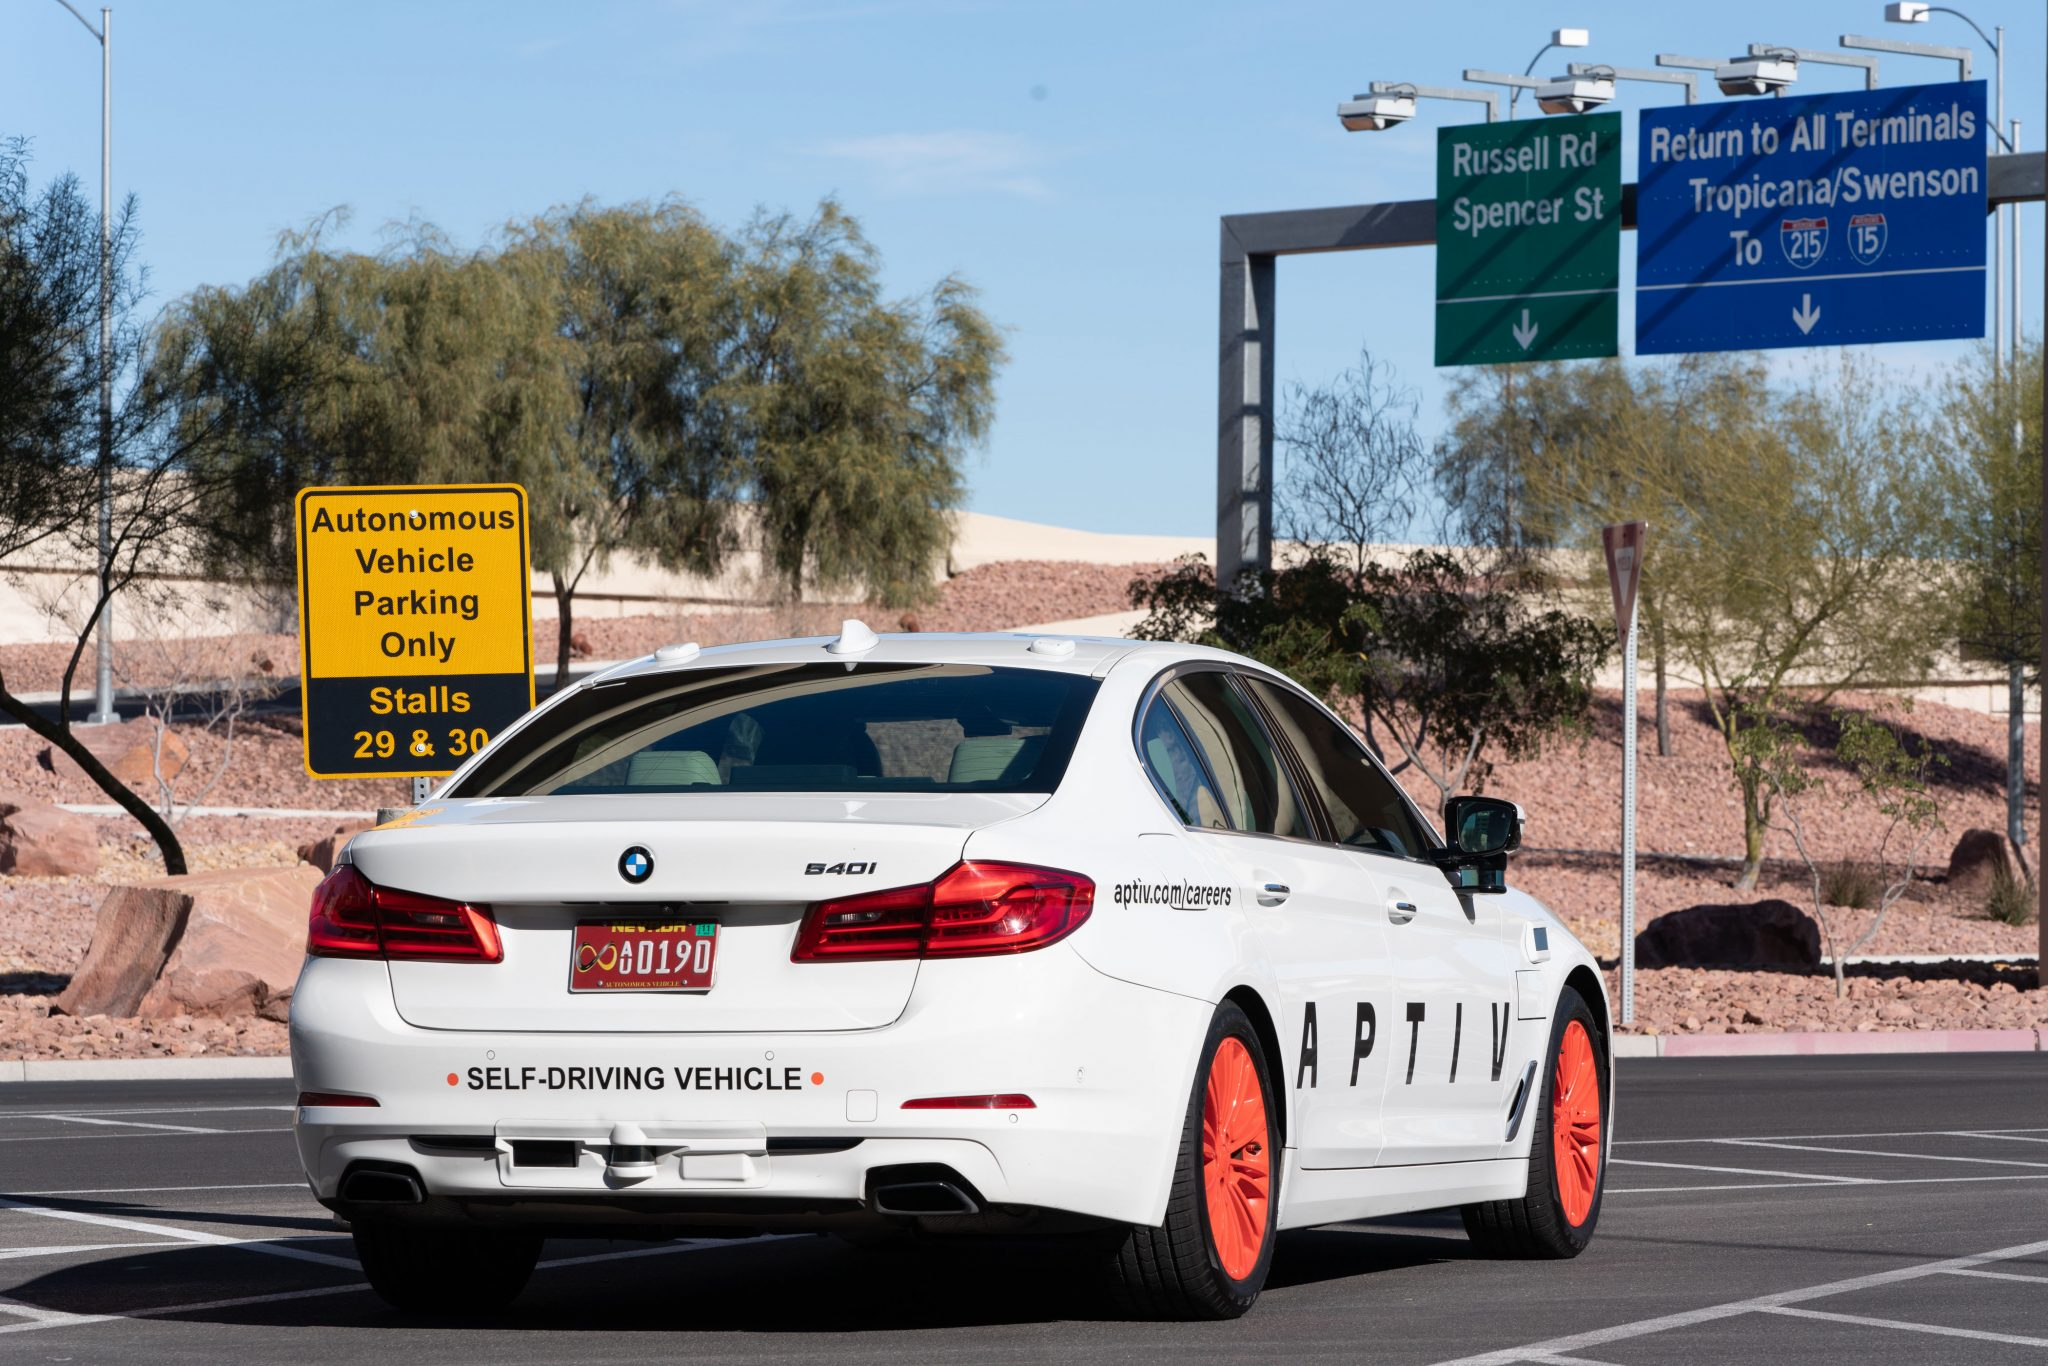 Aptiva self-driving at Las Vegas